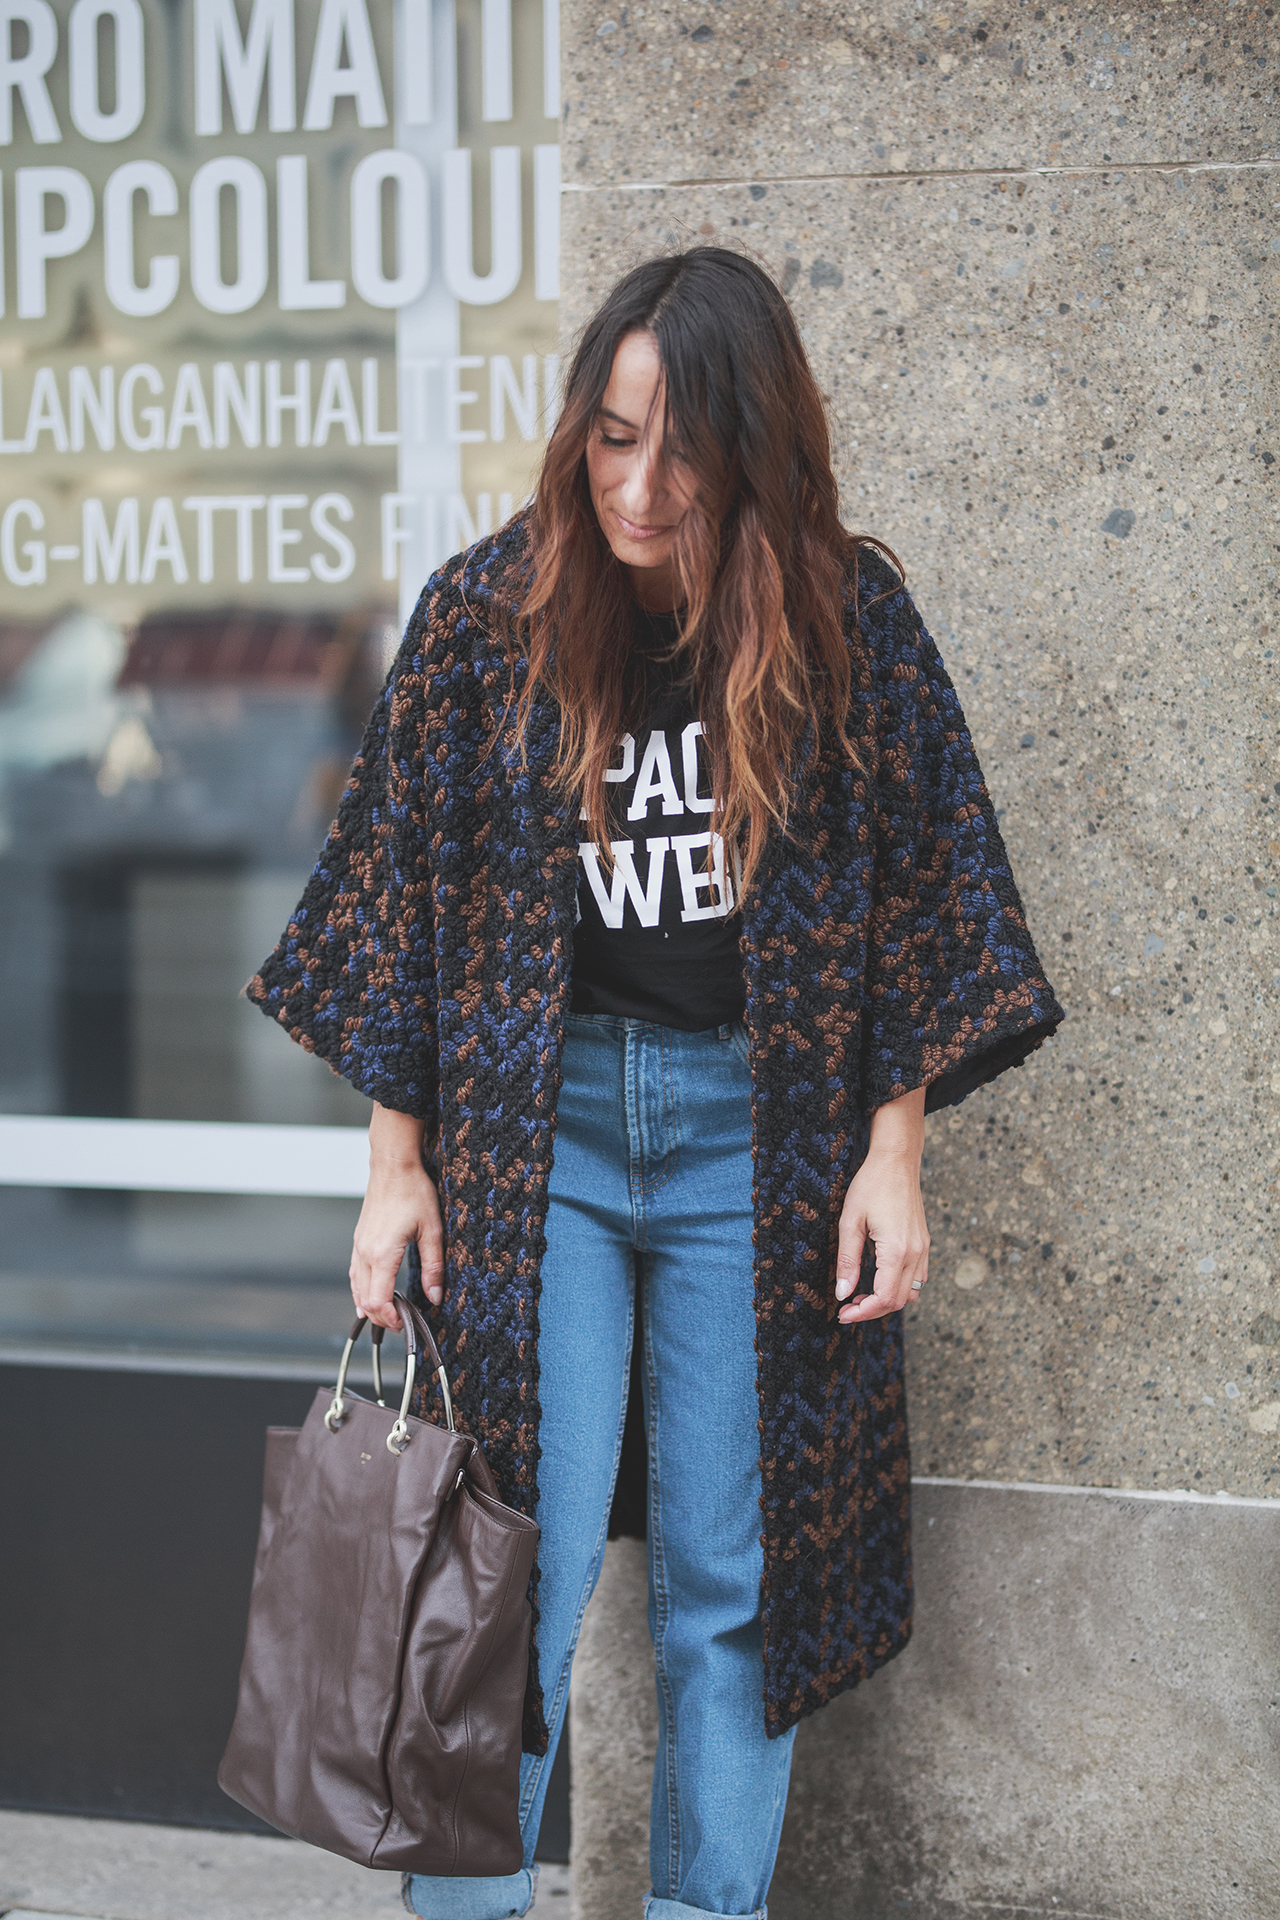 OUTFIT | STREETSTYLE Poncho COAT KALA Fashion Berlin, MOM Jeans, Ganni Shirt & Mules